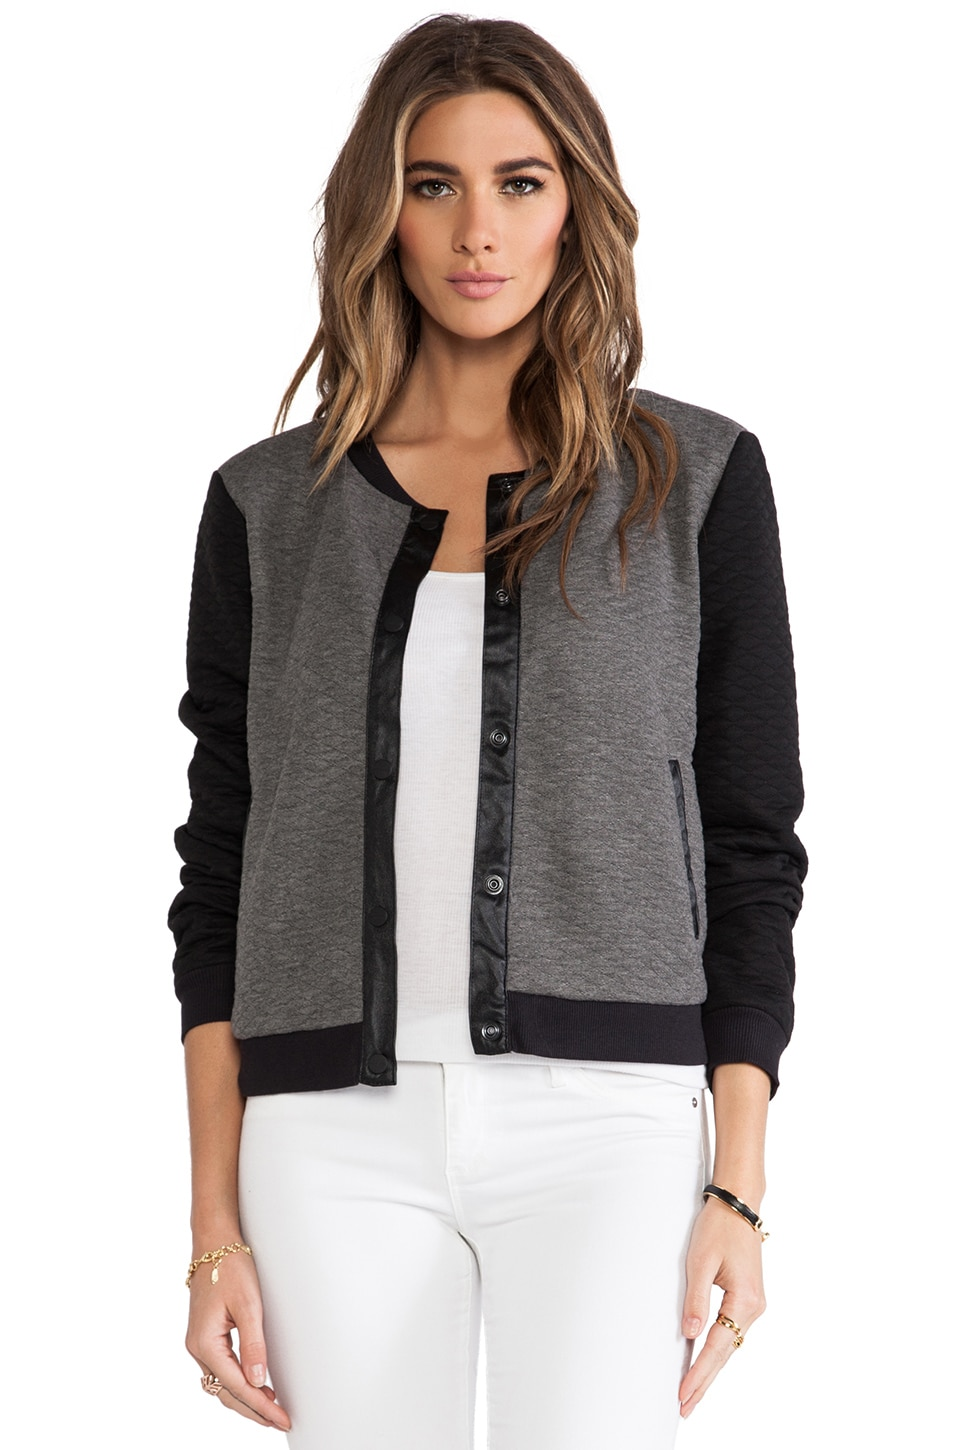 Sanctuary Quilted Soft Varsity Jacket in Stark